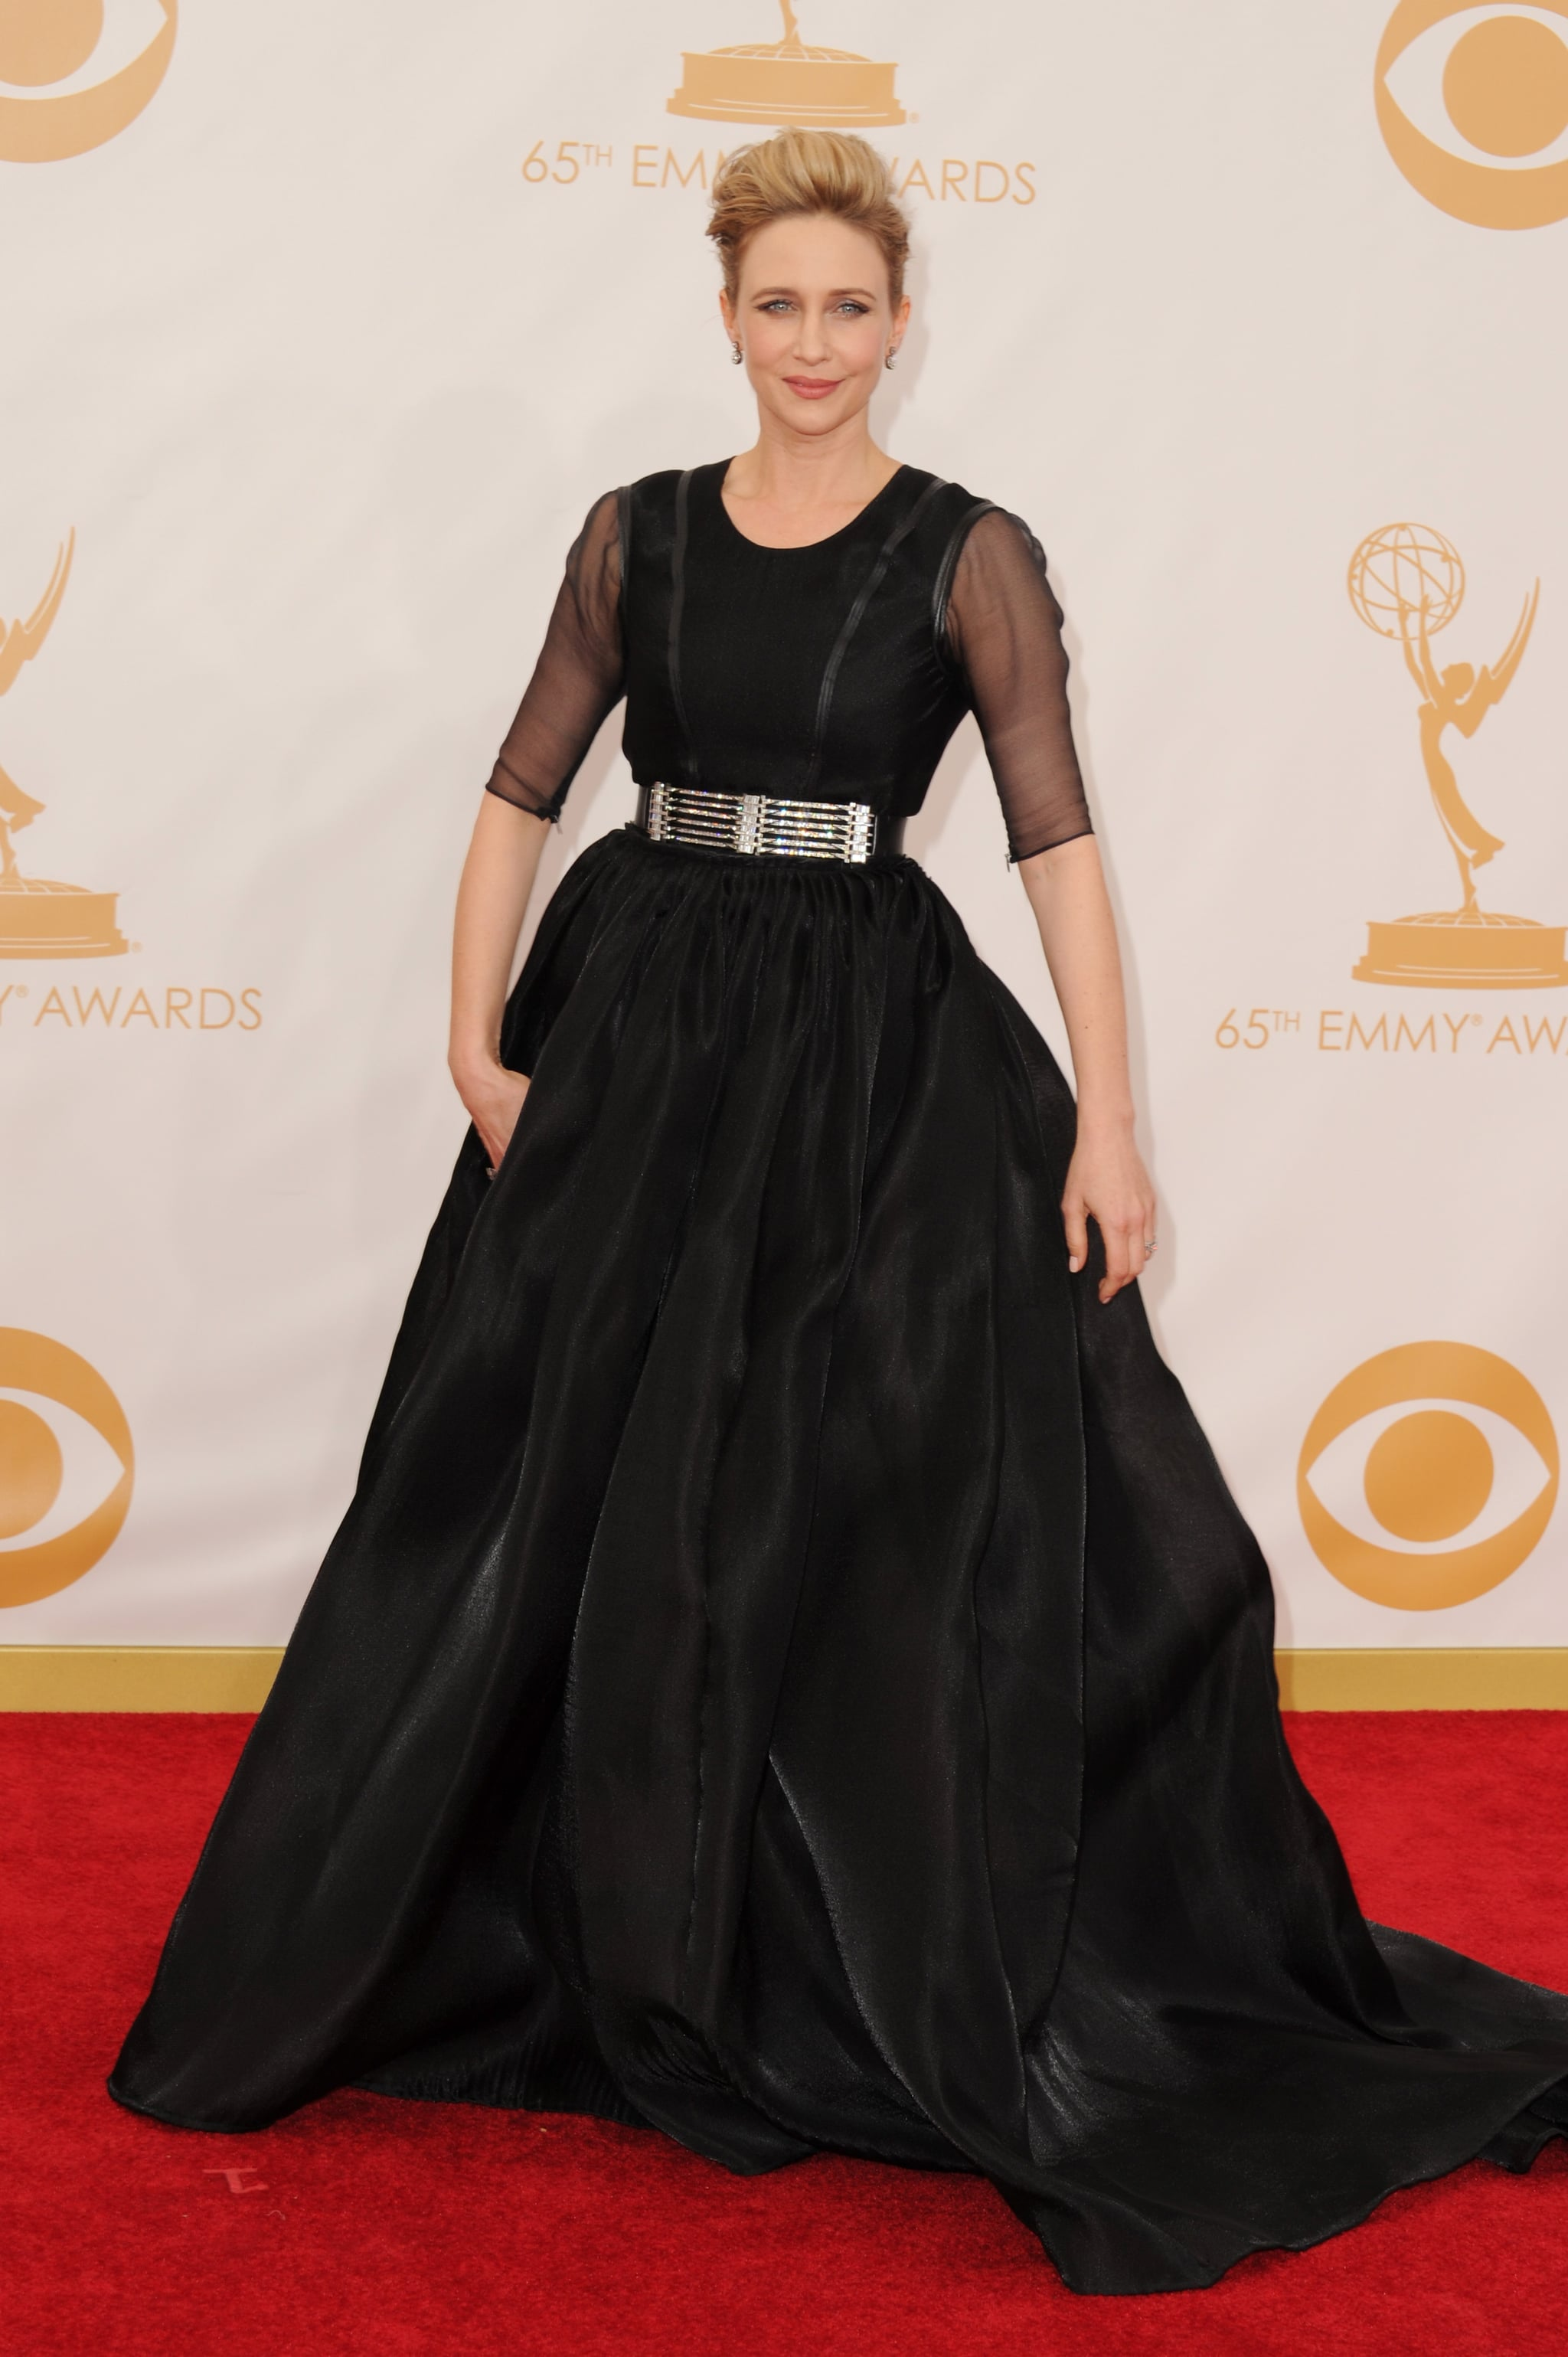 The LBD wasn't so little in Vera Farmiga's case. The actress chose a full-skirted gown with sheer, elbow-length sleeves and Fred Leighton jewelry.